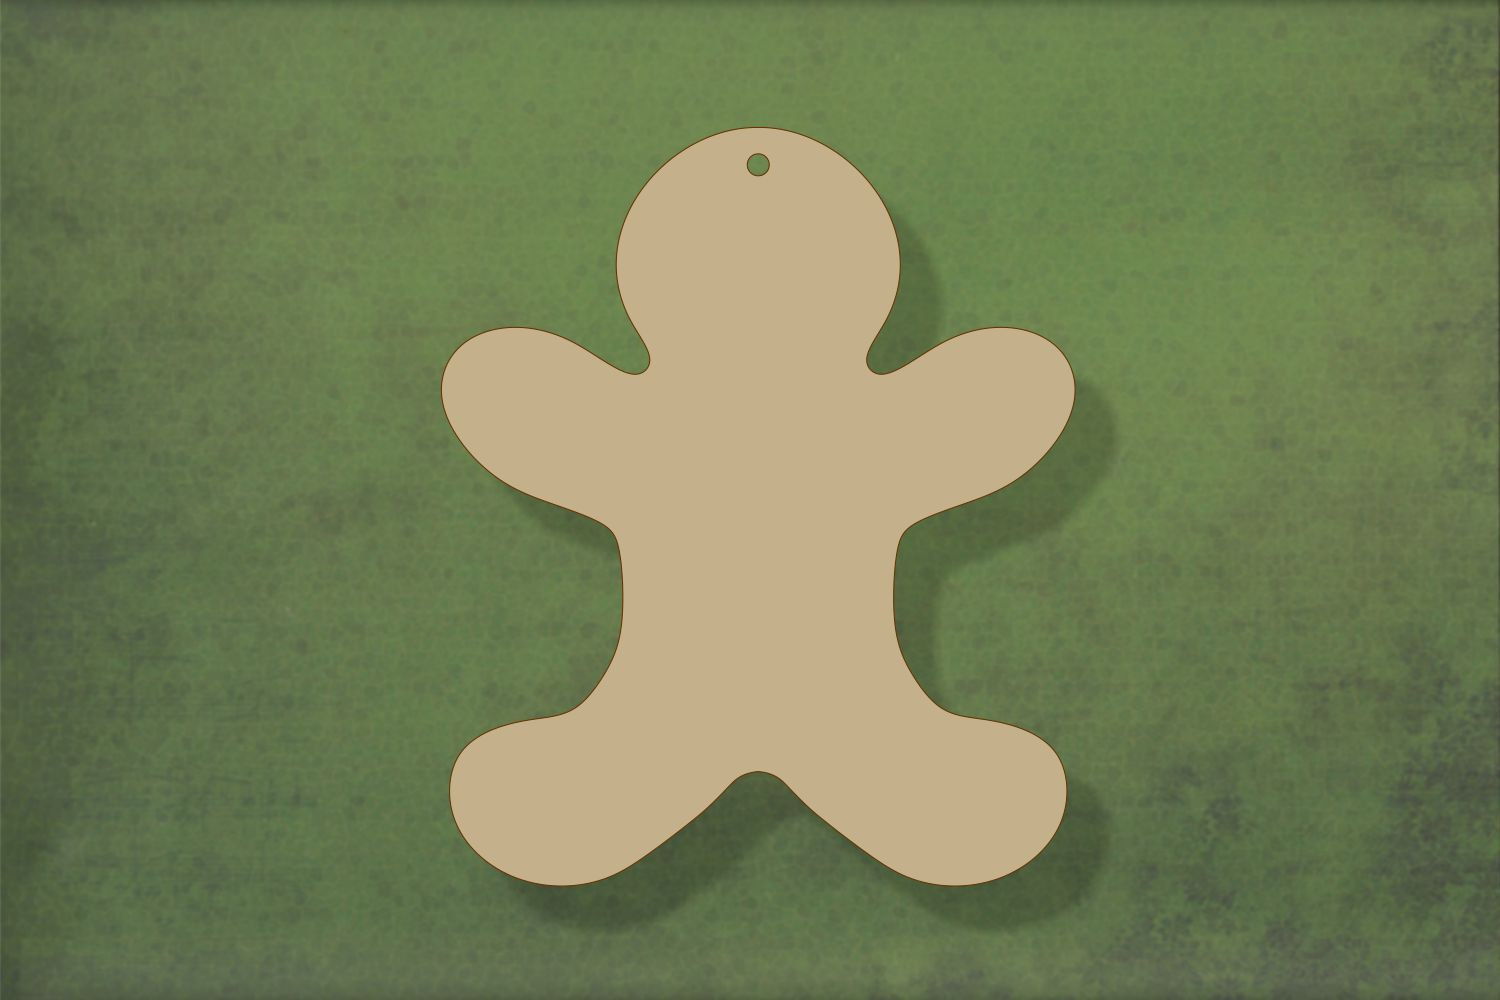 Laser cut, blank wooden Gingerbread person 1 arms up plain shape for craft